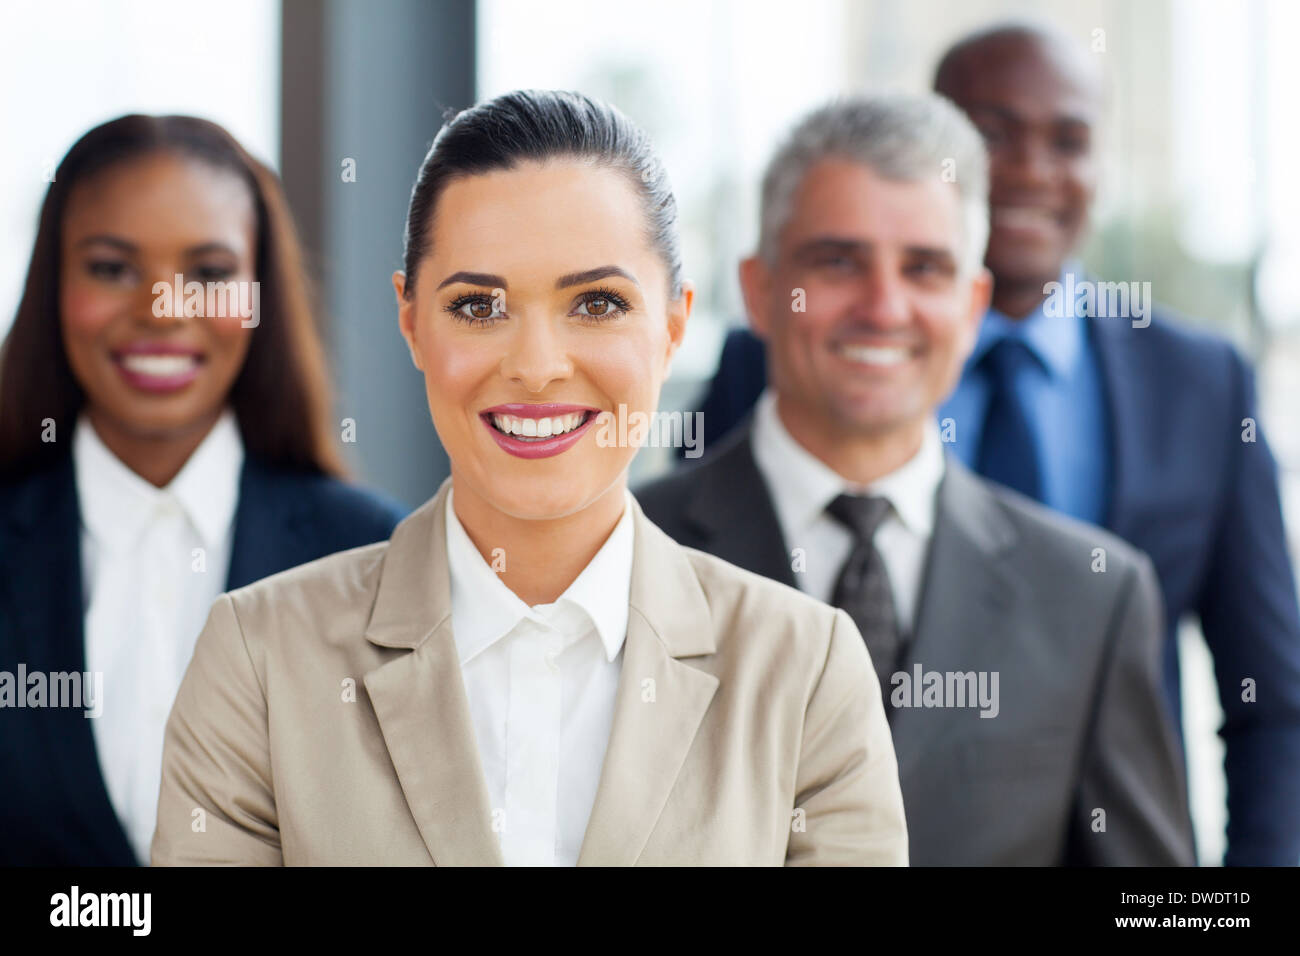 cute businesswoman standing with co-workers in office - Stock Image